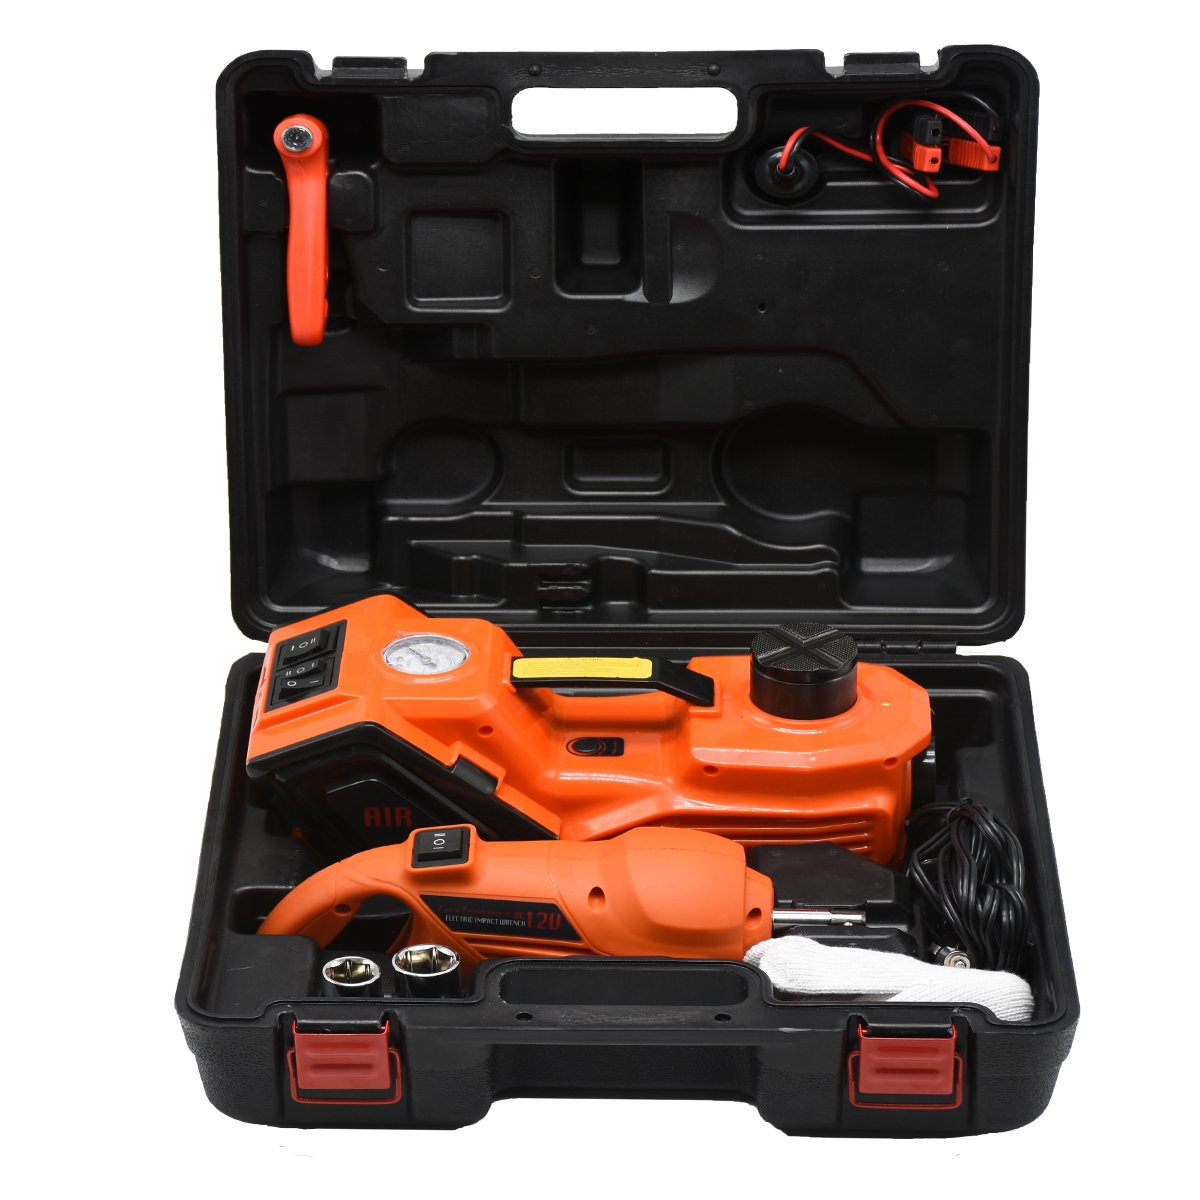 MarchInn 12V DC 30T6600lb Electric Hydraulic Floor Jack And Tire Inflator Pump